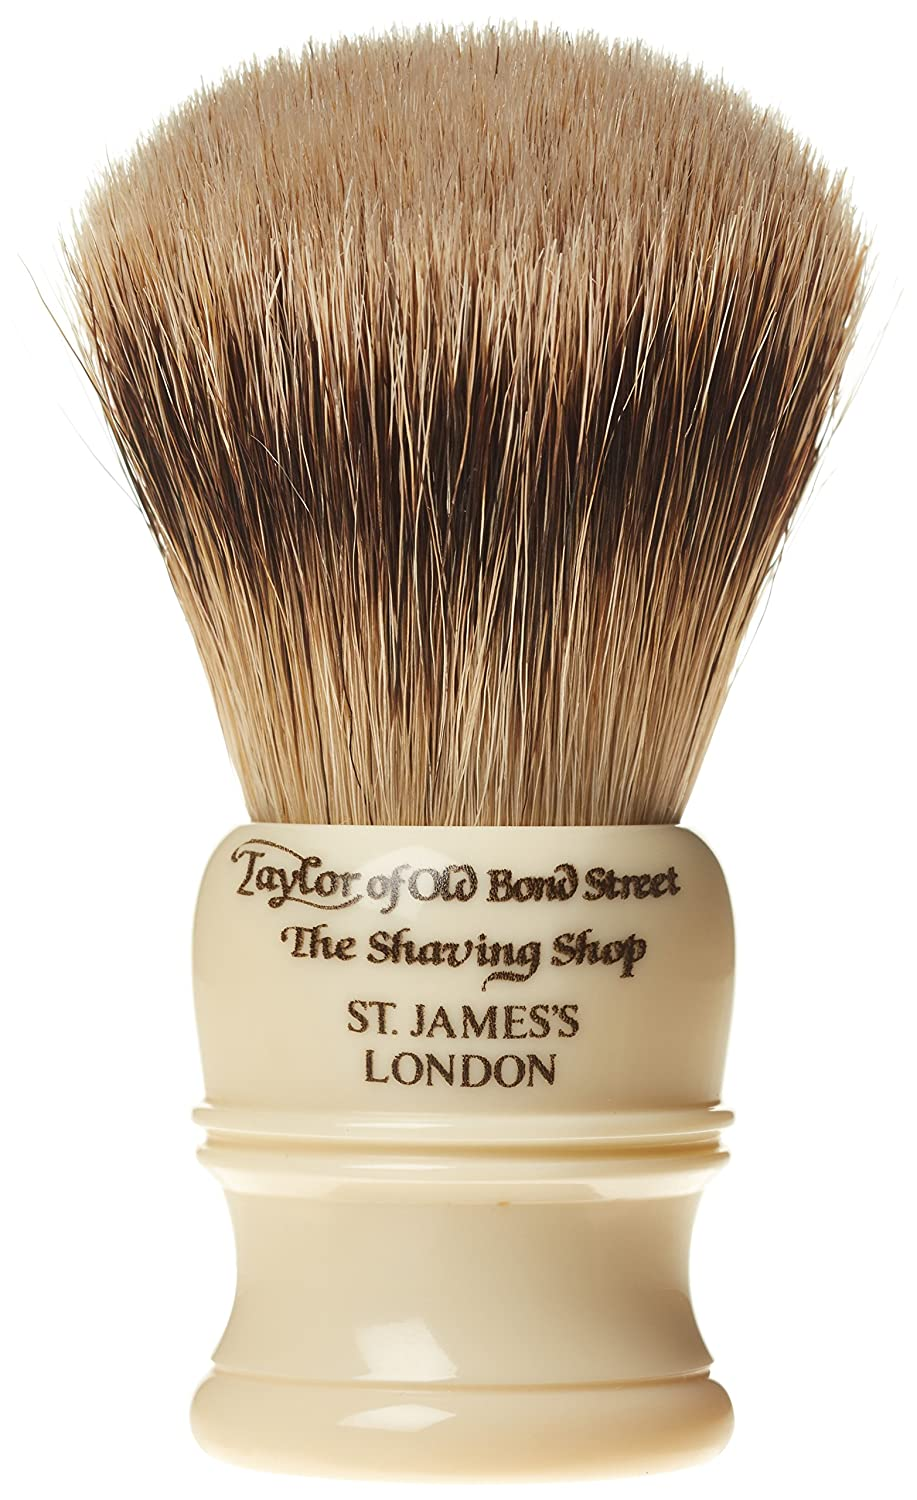 Taylor of Old Bond Street Super Badger Small Imit Ivory Shaving Brush SH 1